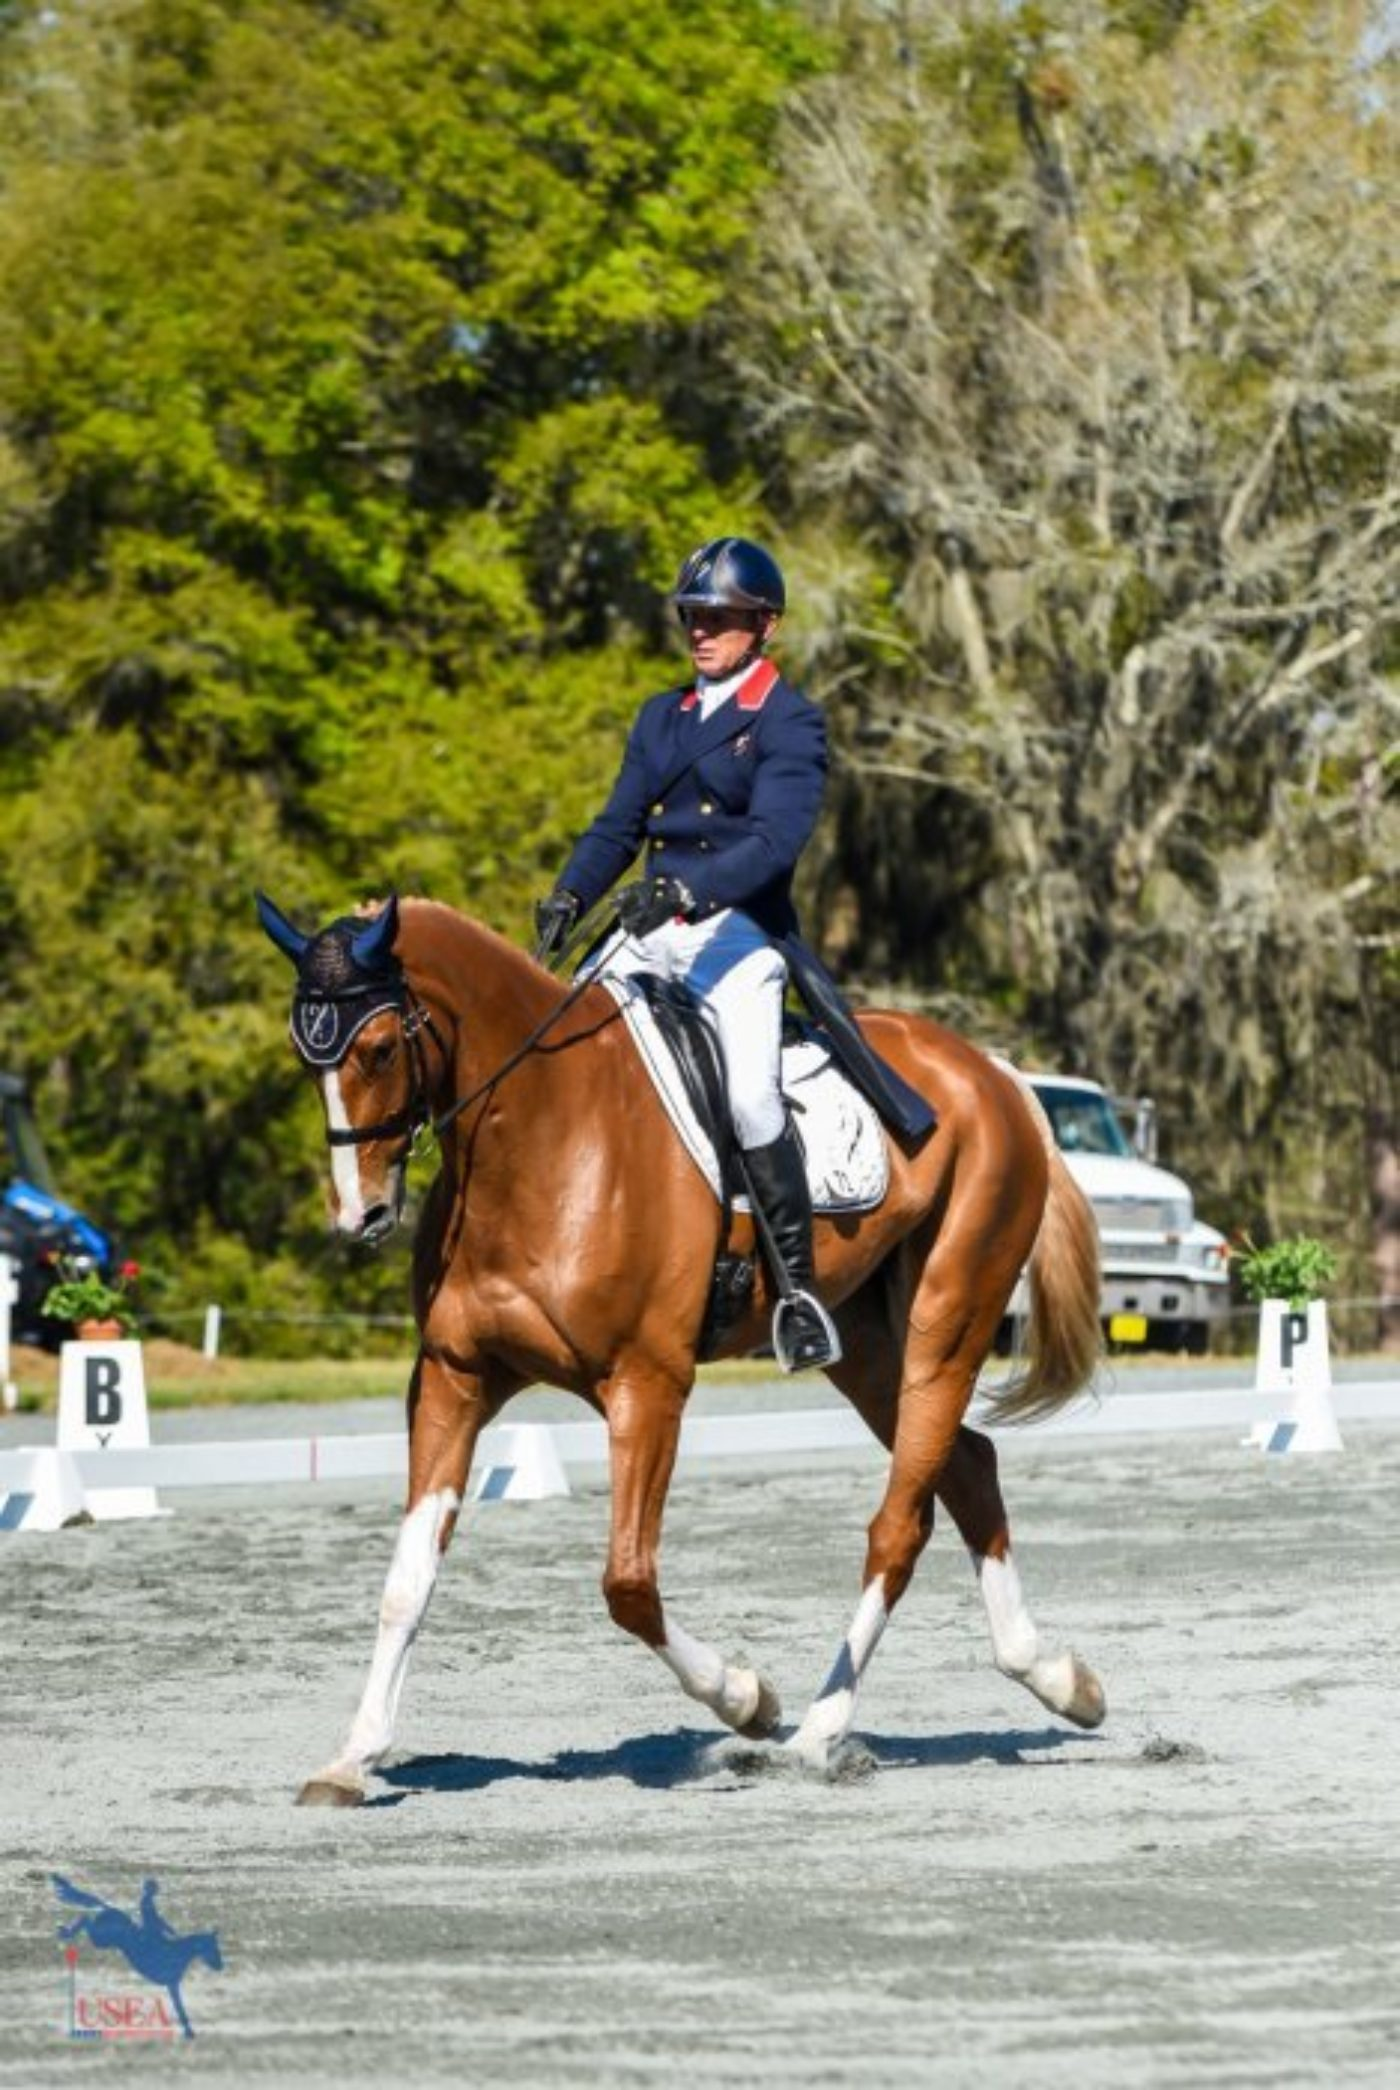 9th - Leslie Law and Voltaire de Tre - 32.3